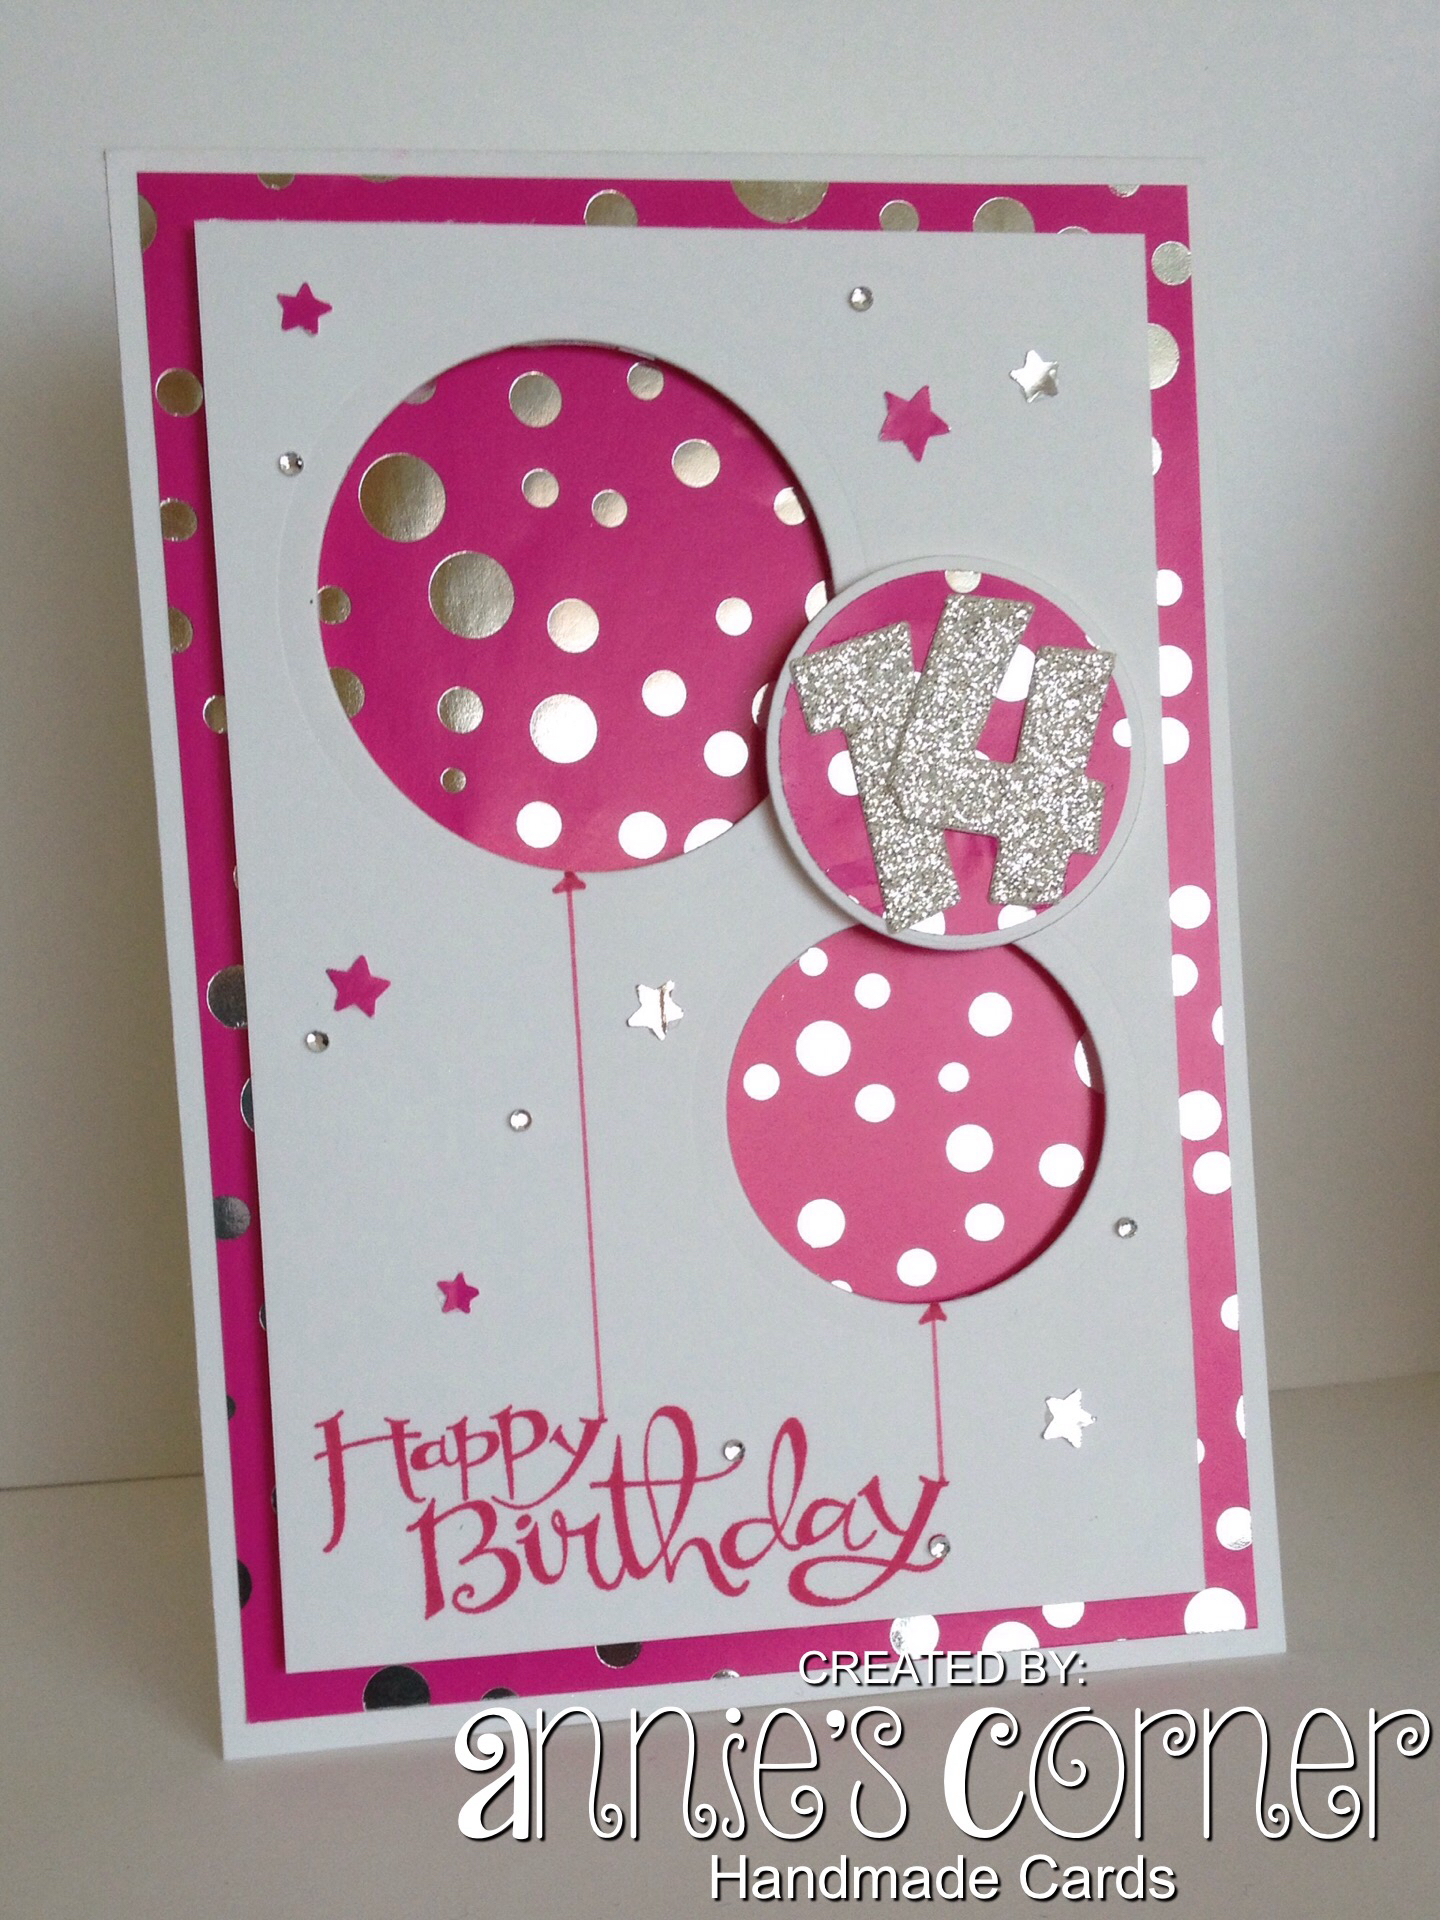 designs for greeting cards for birthday cards ; 068524c42123c1e34d68588f98983f83